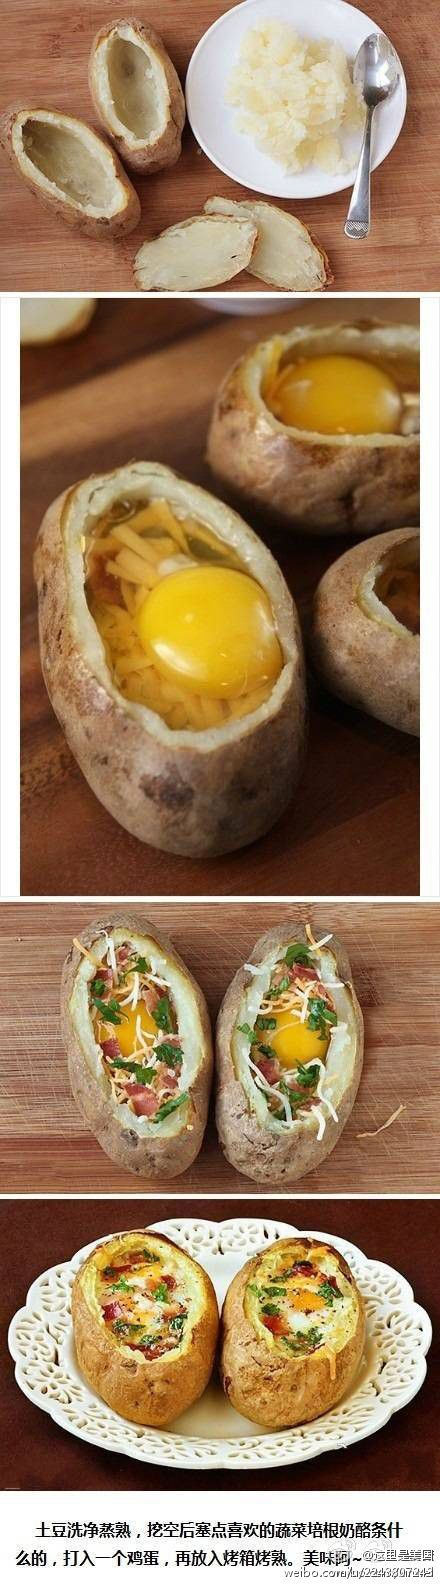 ~no link, but it looks easy enough. scoop out potato innards, add a bit of…